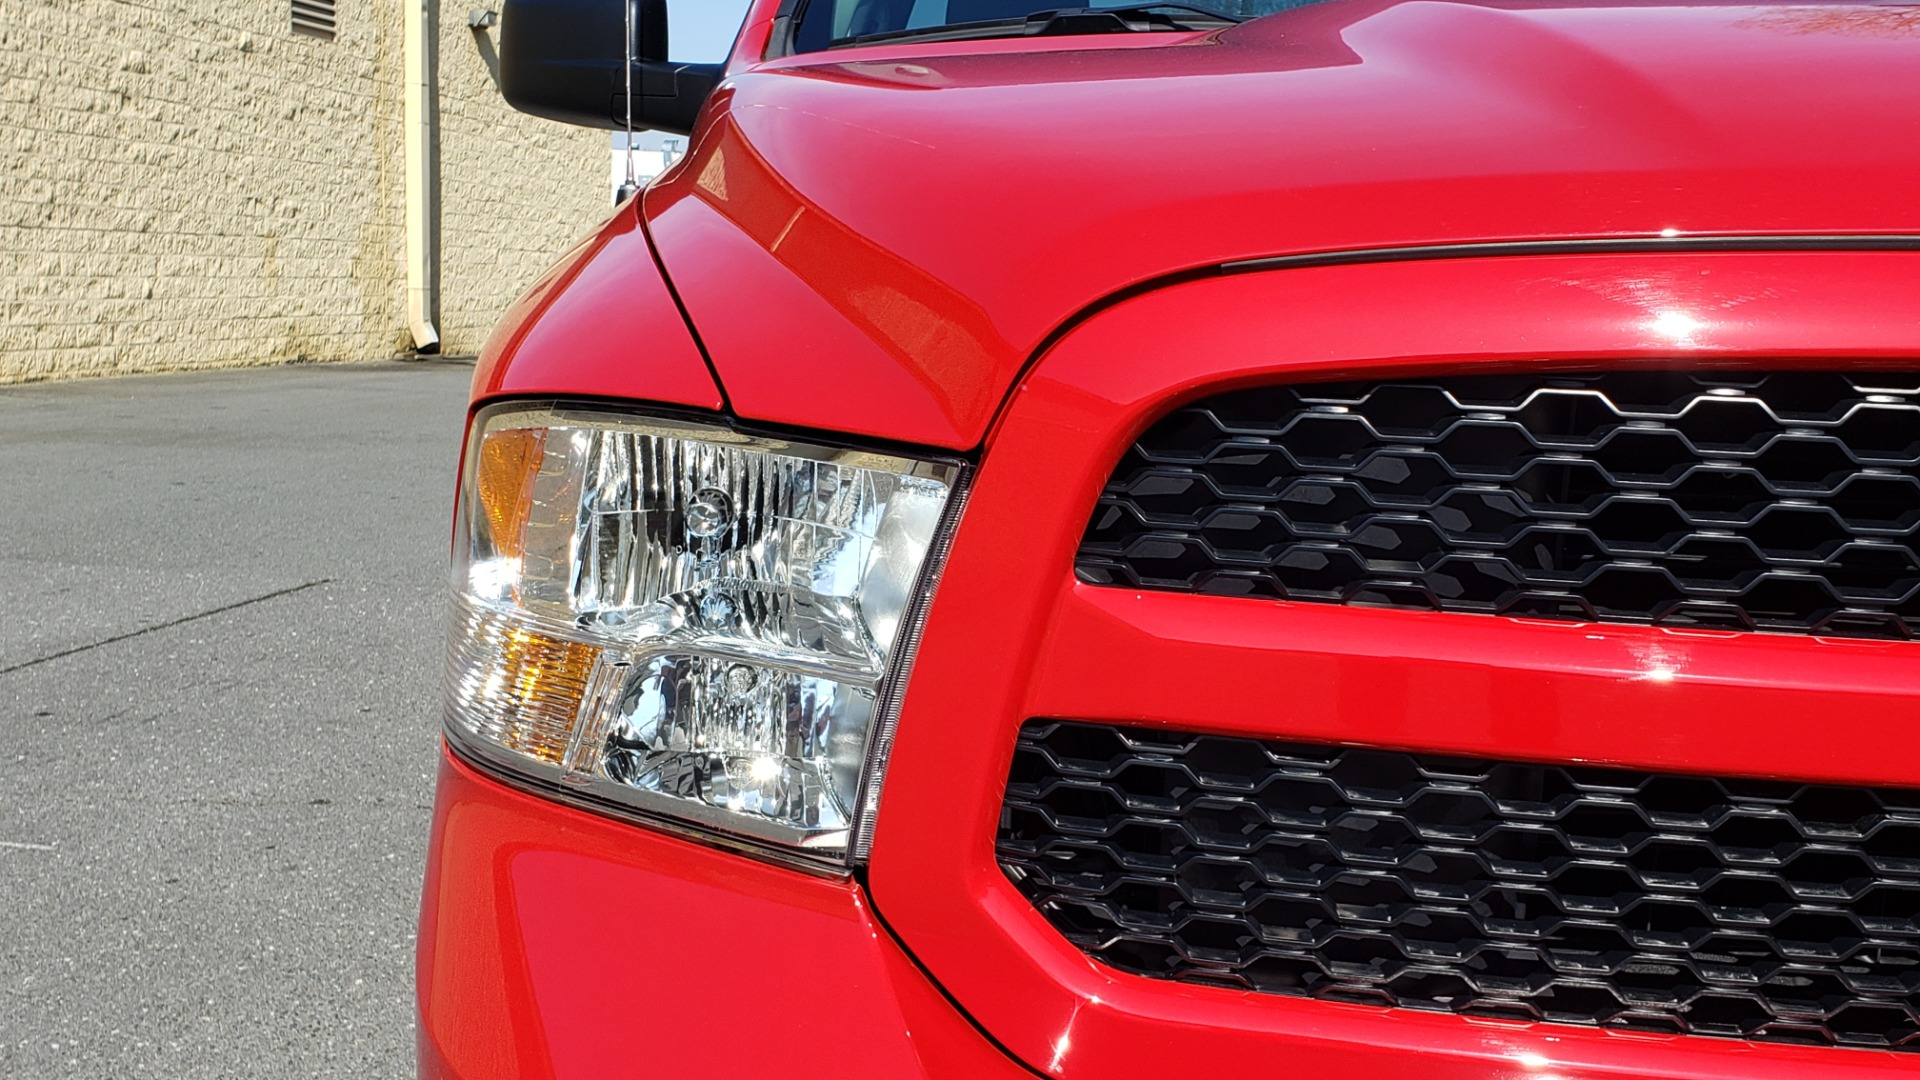 Used 2017 Ram 1500 EXPRESS CREWCAB 4X4 / 3.6L V6 / 8-SPD AUTO / BEDLINER for sale Sold at Formula Imports in Charlotte NC 28227 16